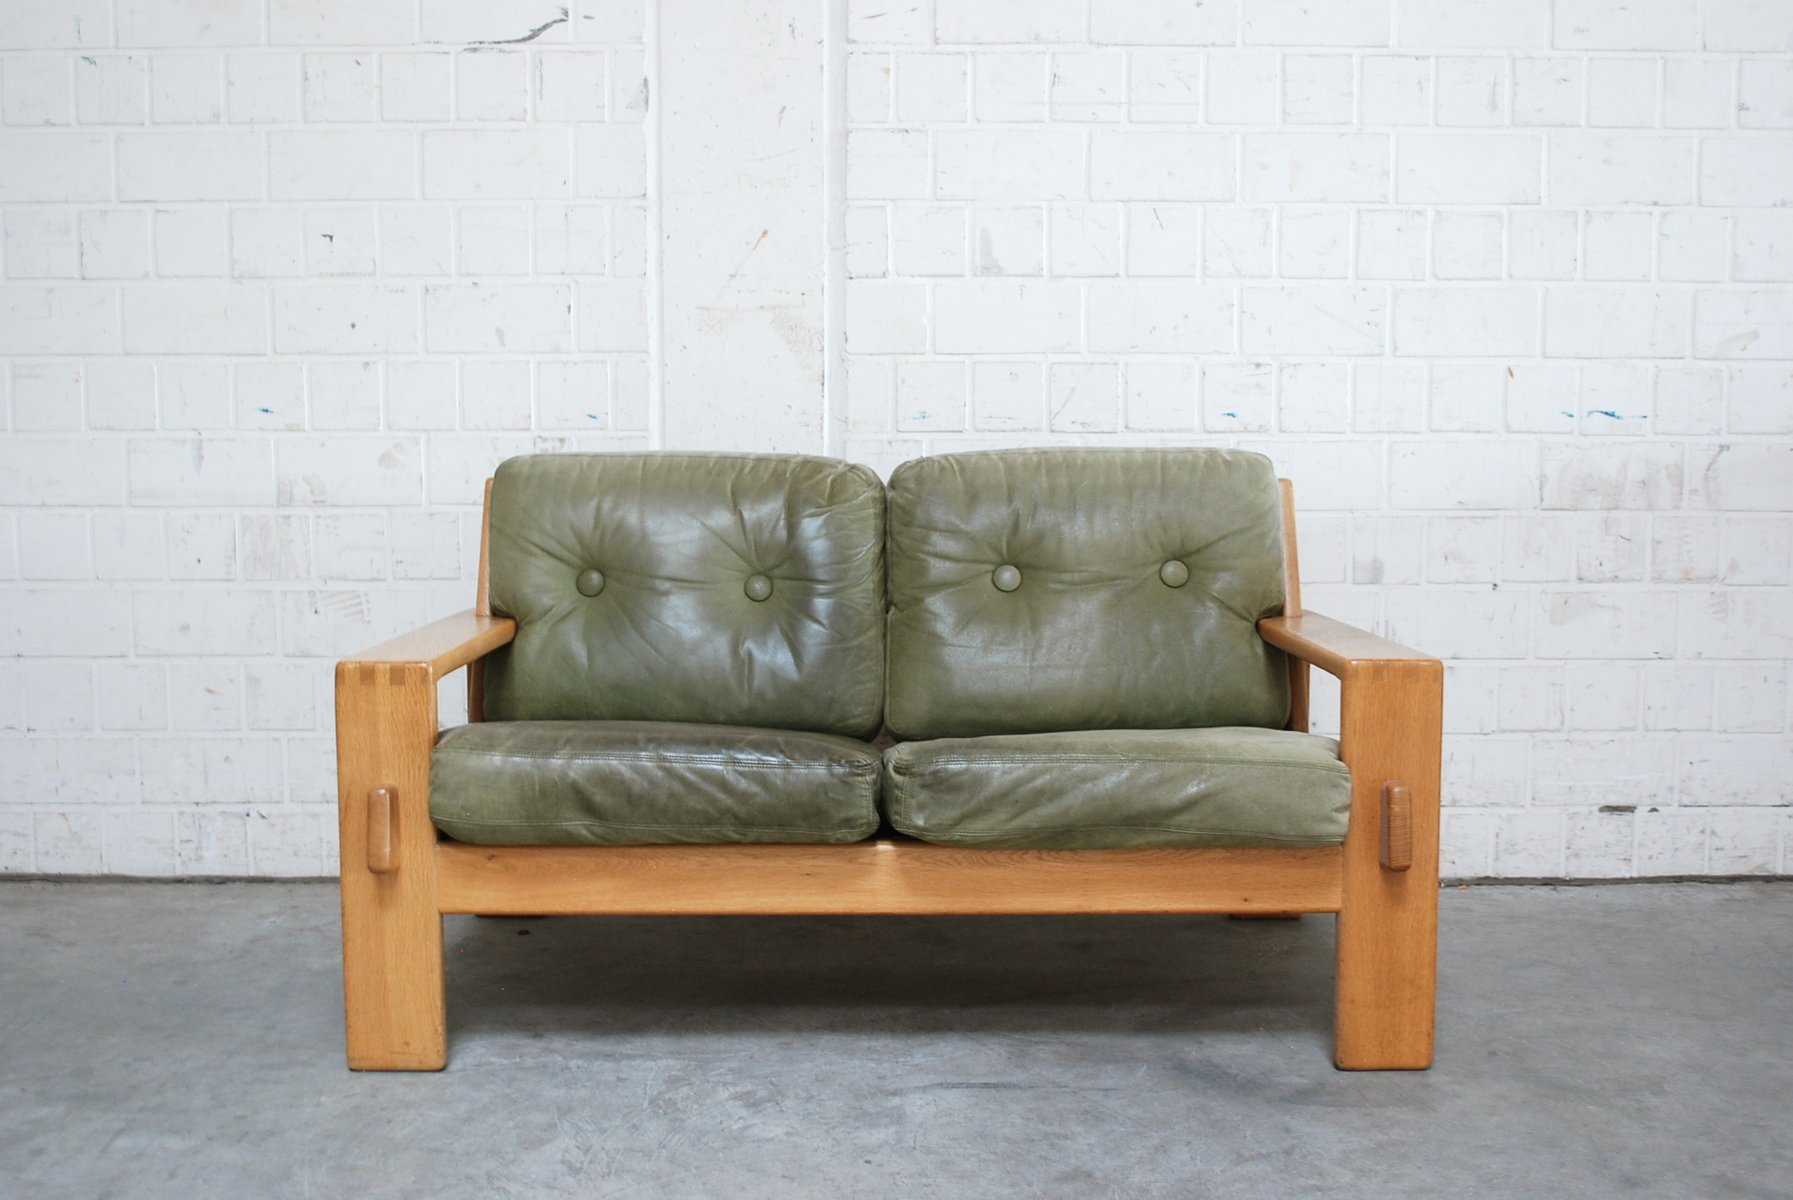 Vintage Bonanza Green Leather Sofa By Esko Pajamies For Asko